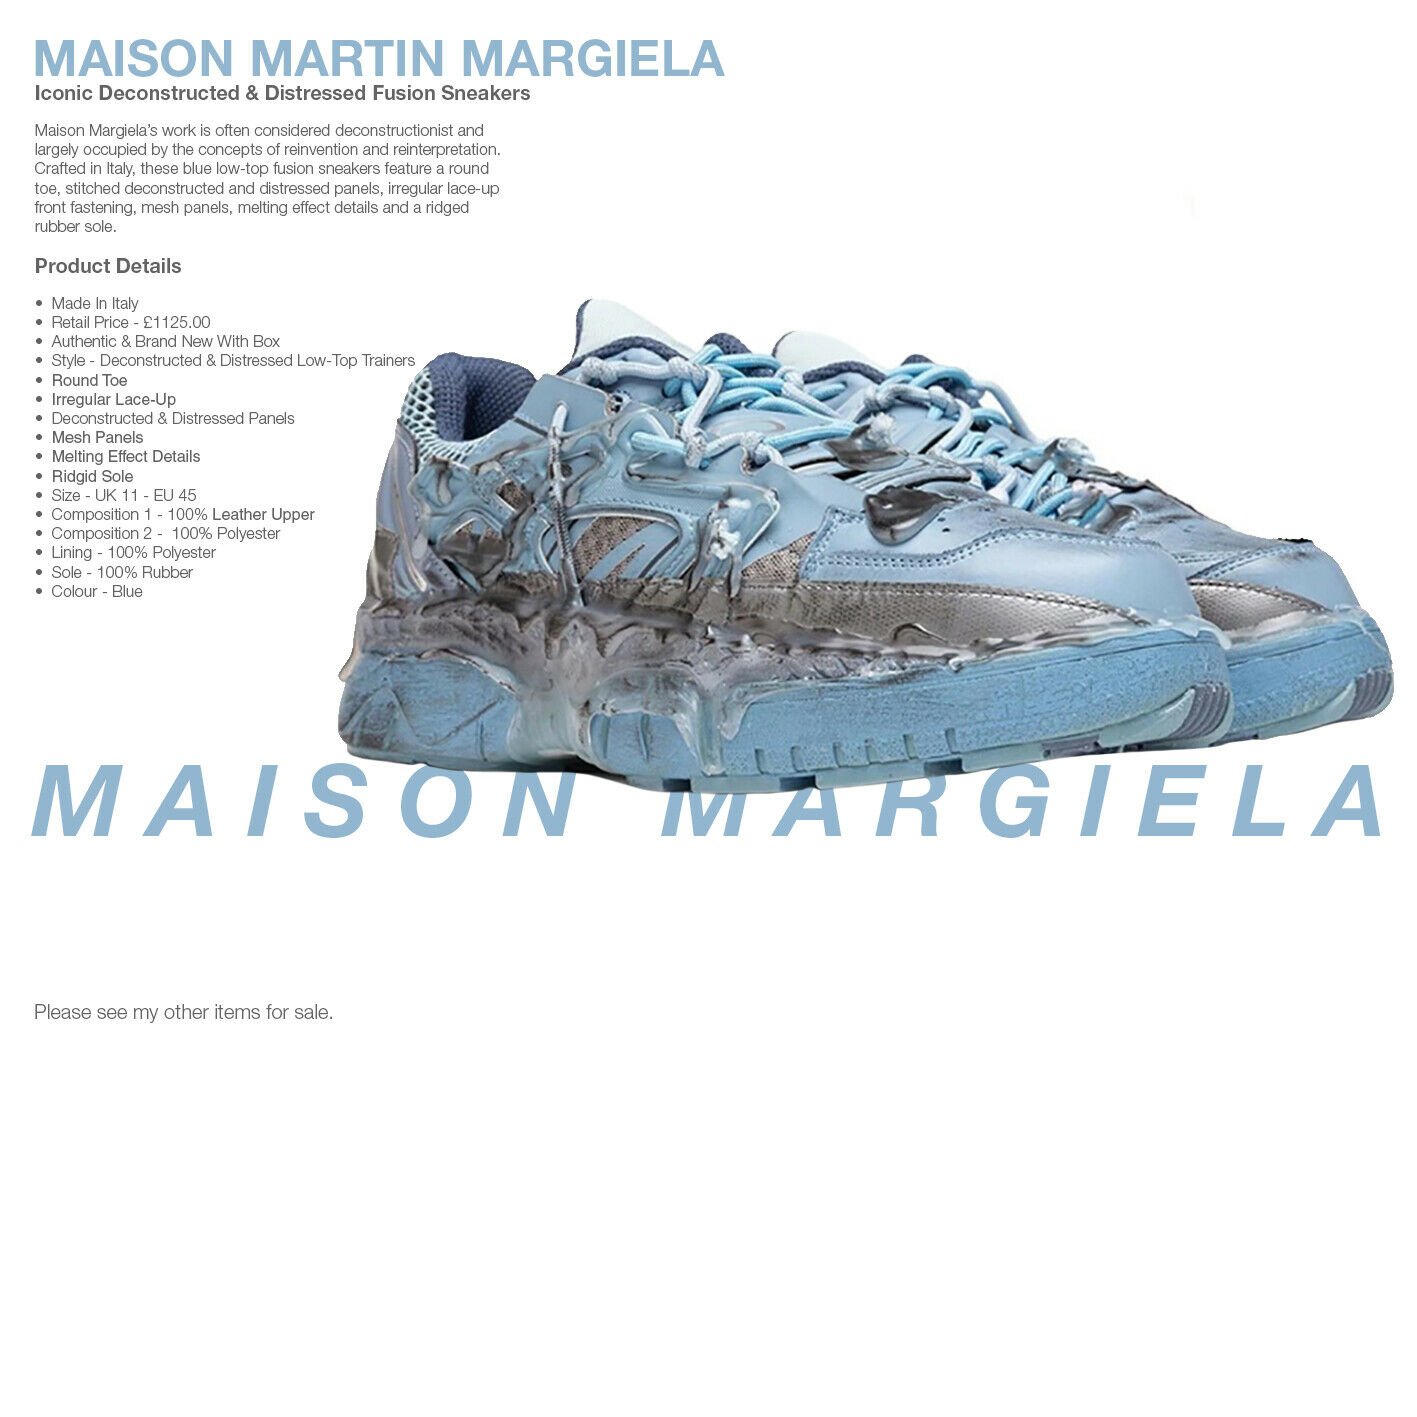 MAISON MARTIN MARGIELA Trainers - Blue Distressed Fusion Sneakers - WAS